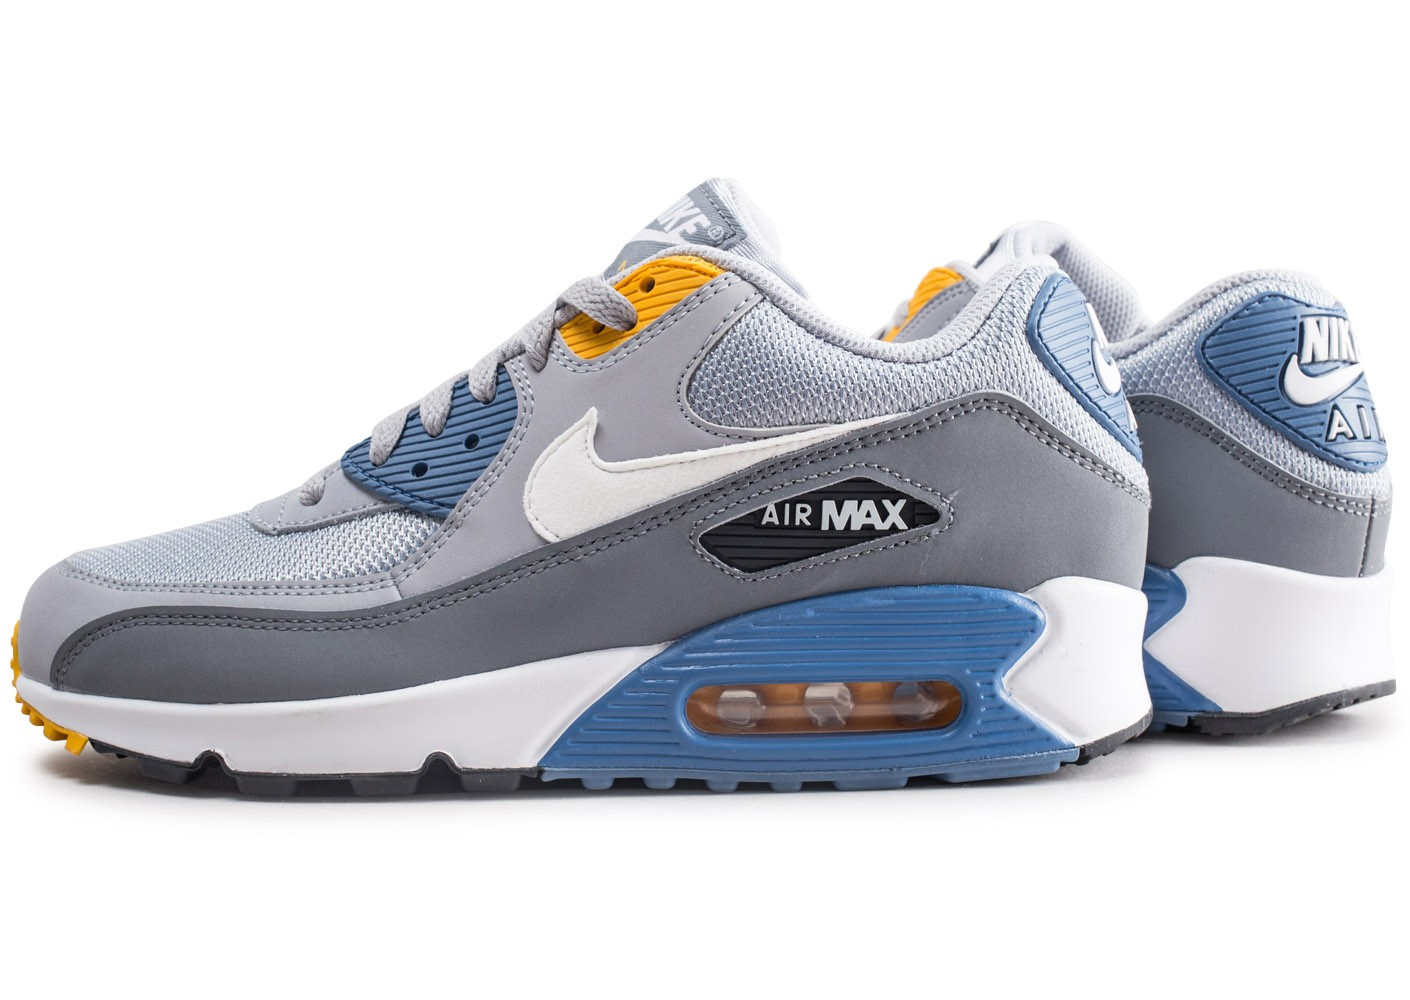 Nike Air Max 90 Essential grise et bleue Chaussures